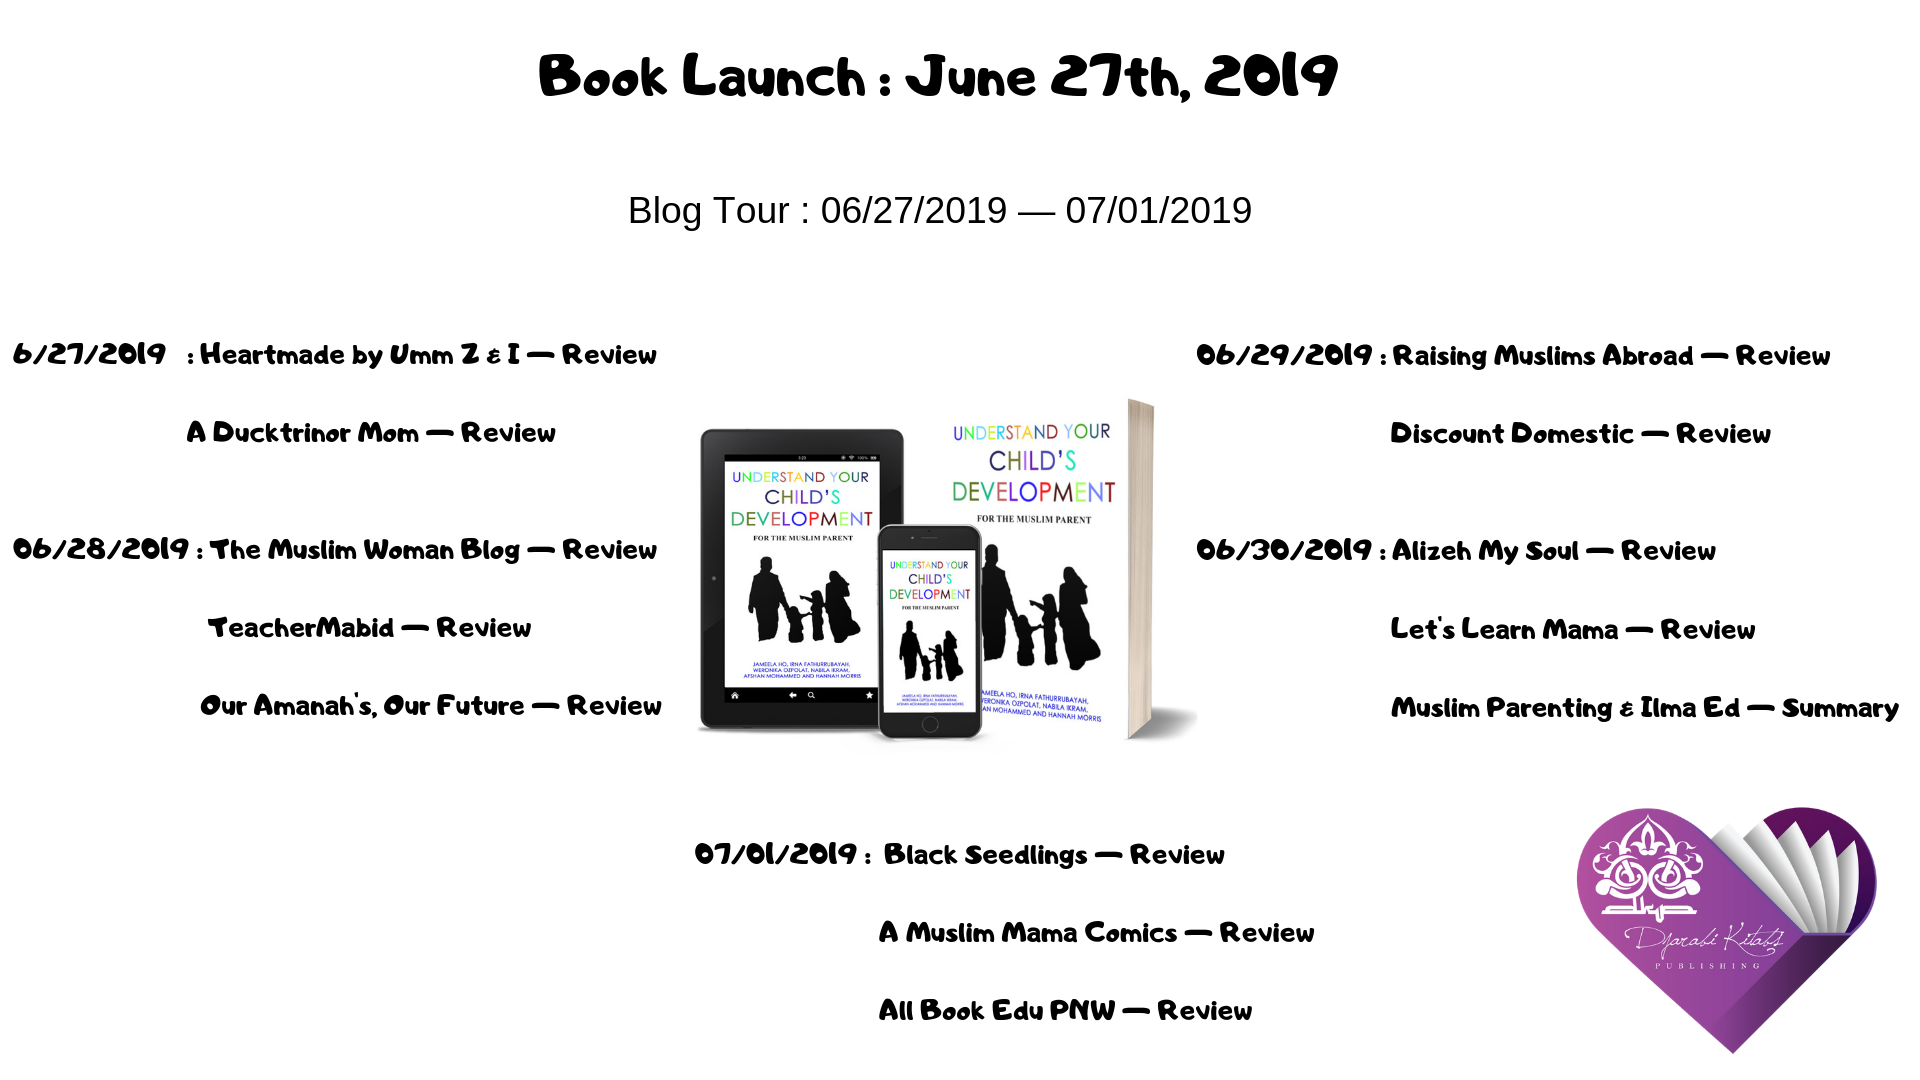 New Release! Book Launch and Blog Tour uycd 6 18 19 fb twitter banner.png